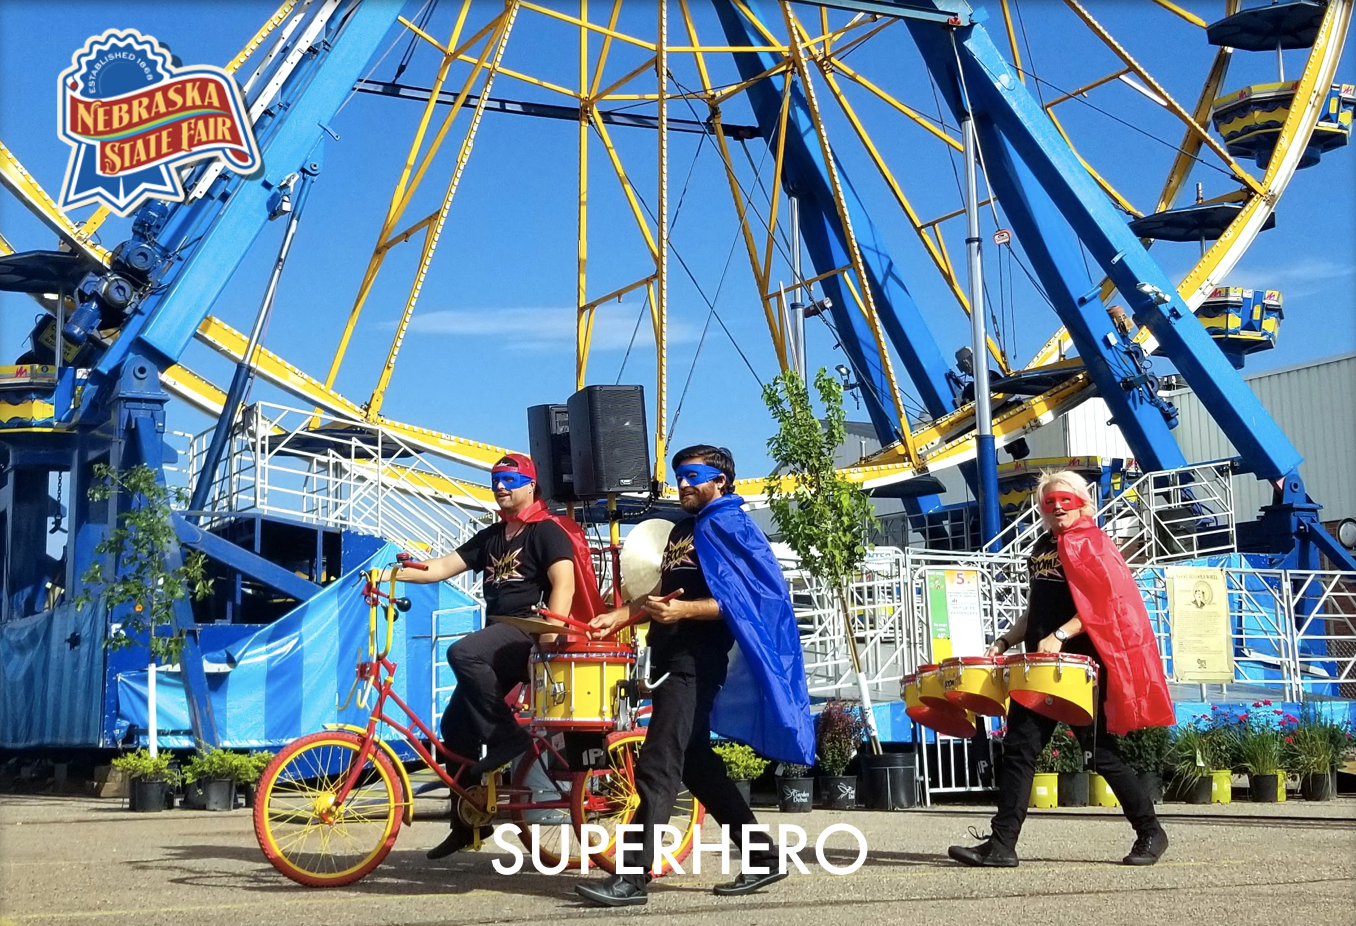 Fair Superhero